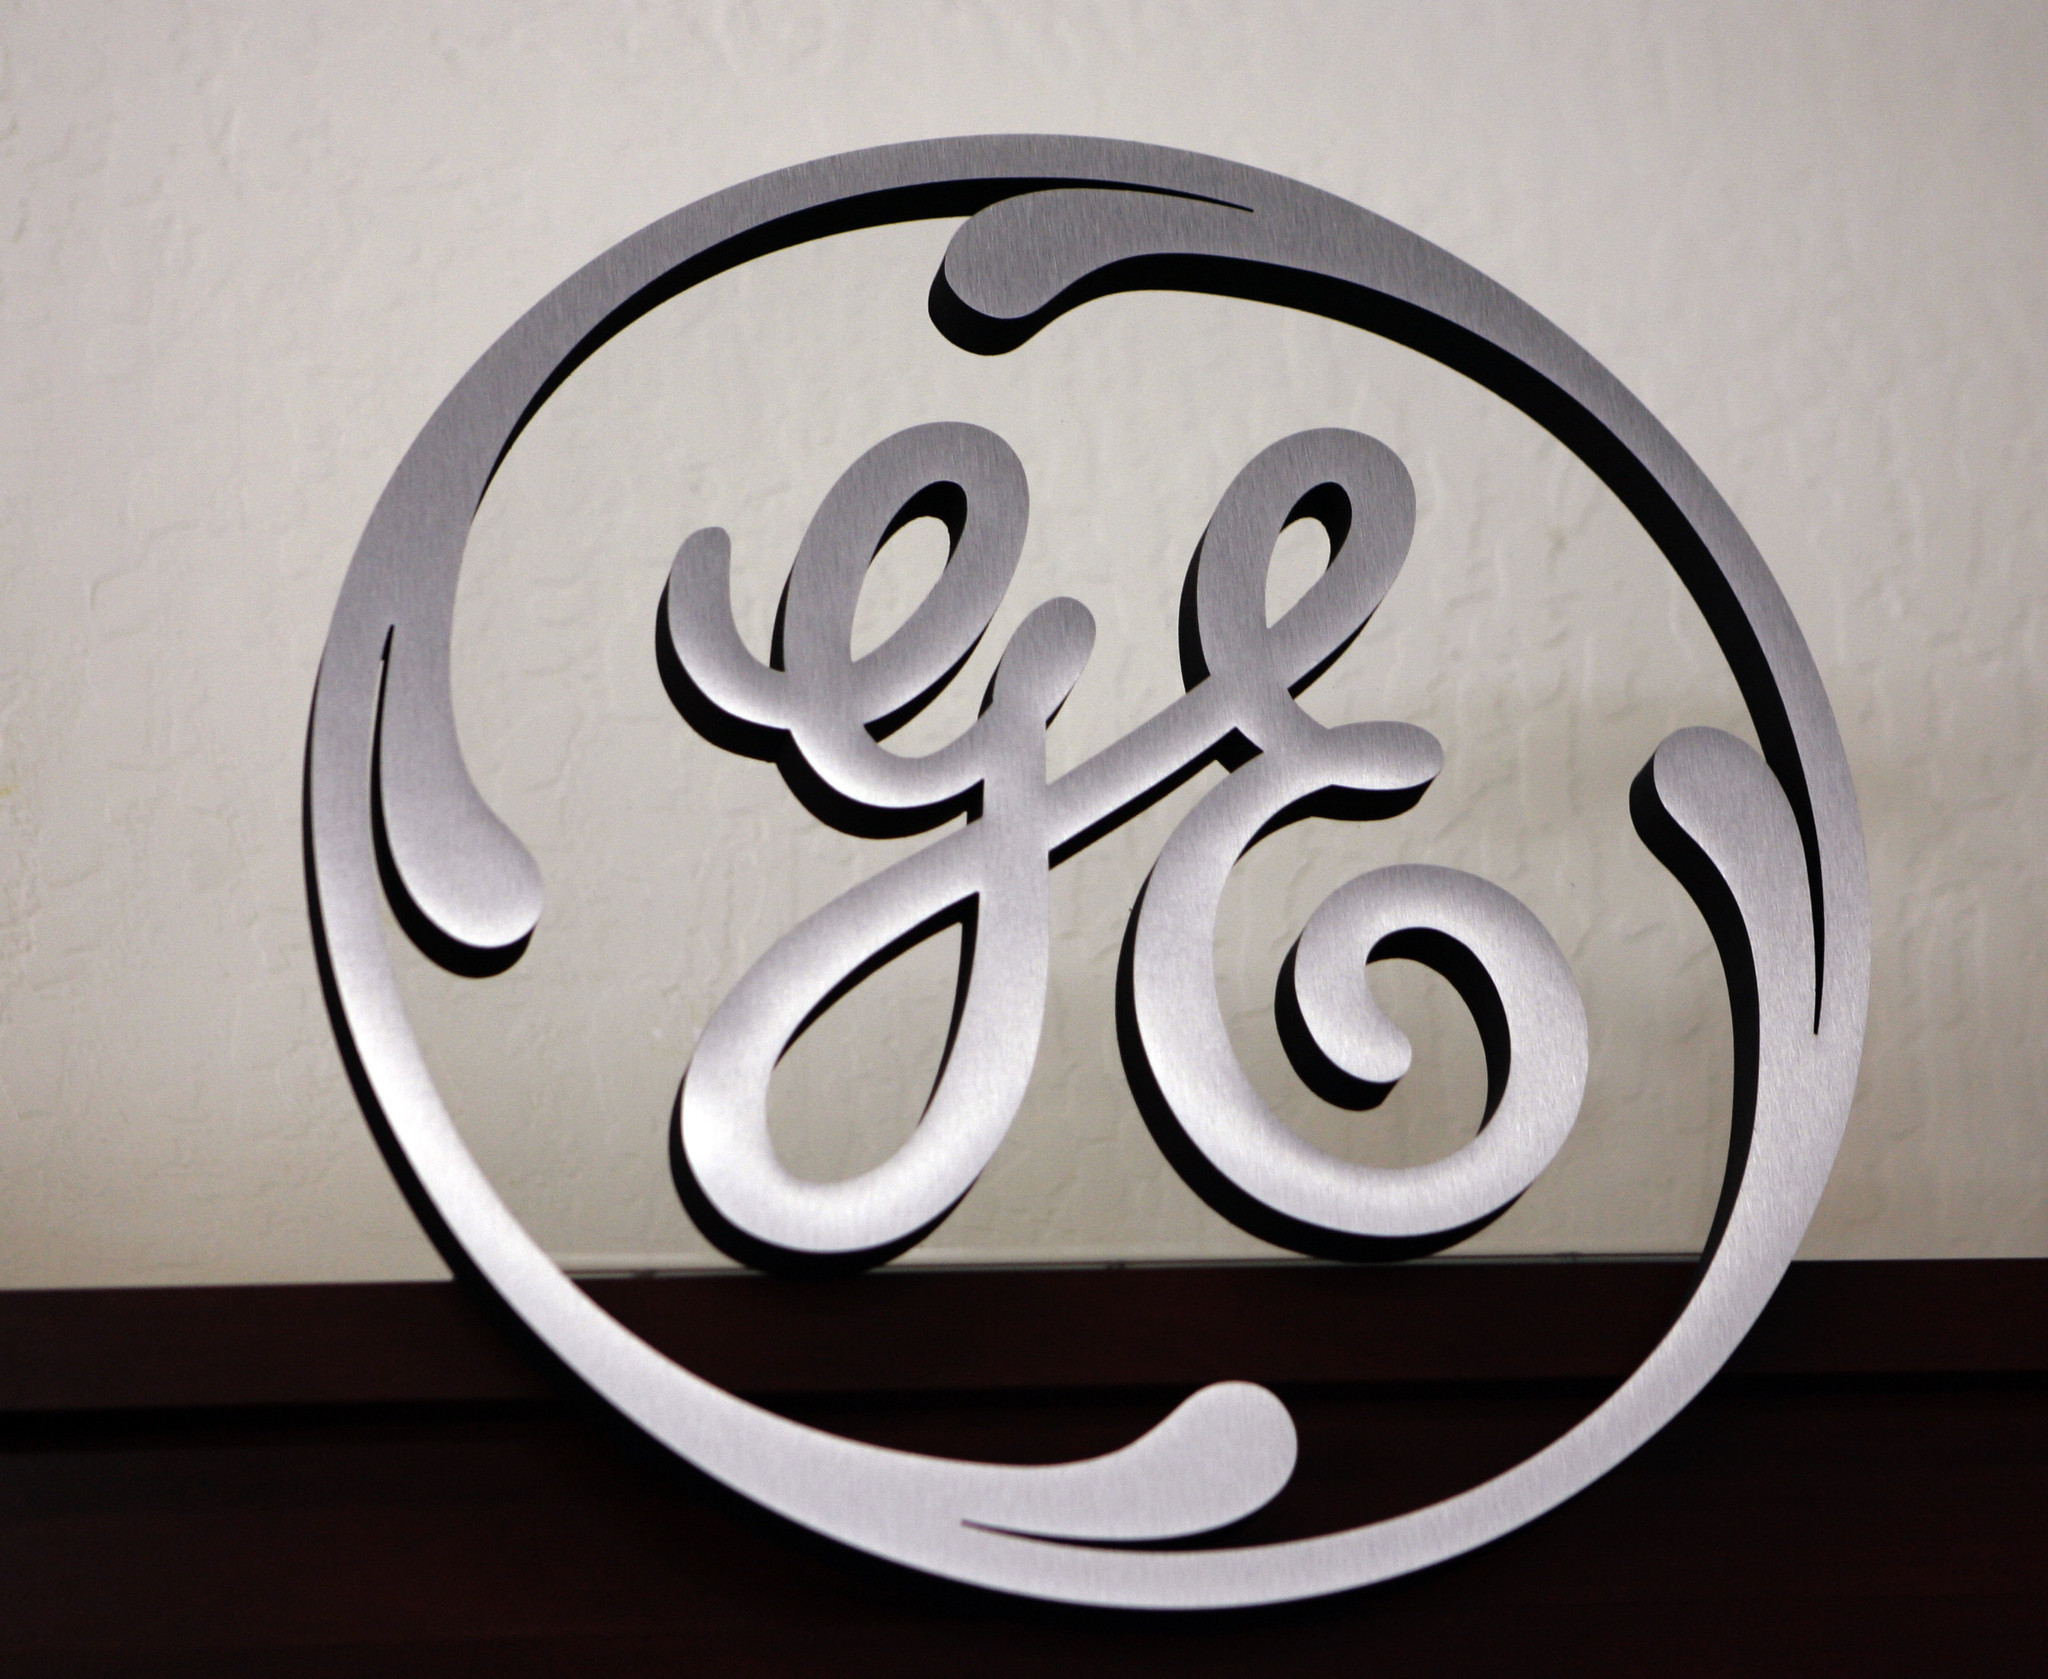 ge casting off lending business in return to its industrial roots la times - General Electric